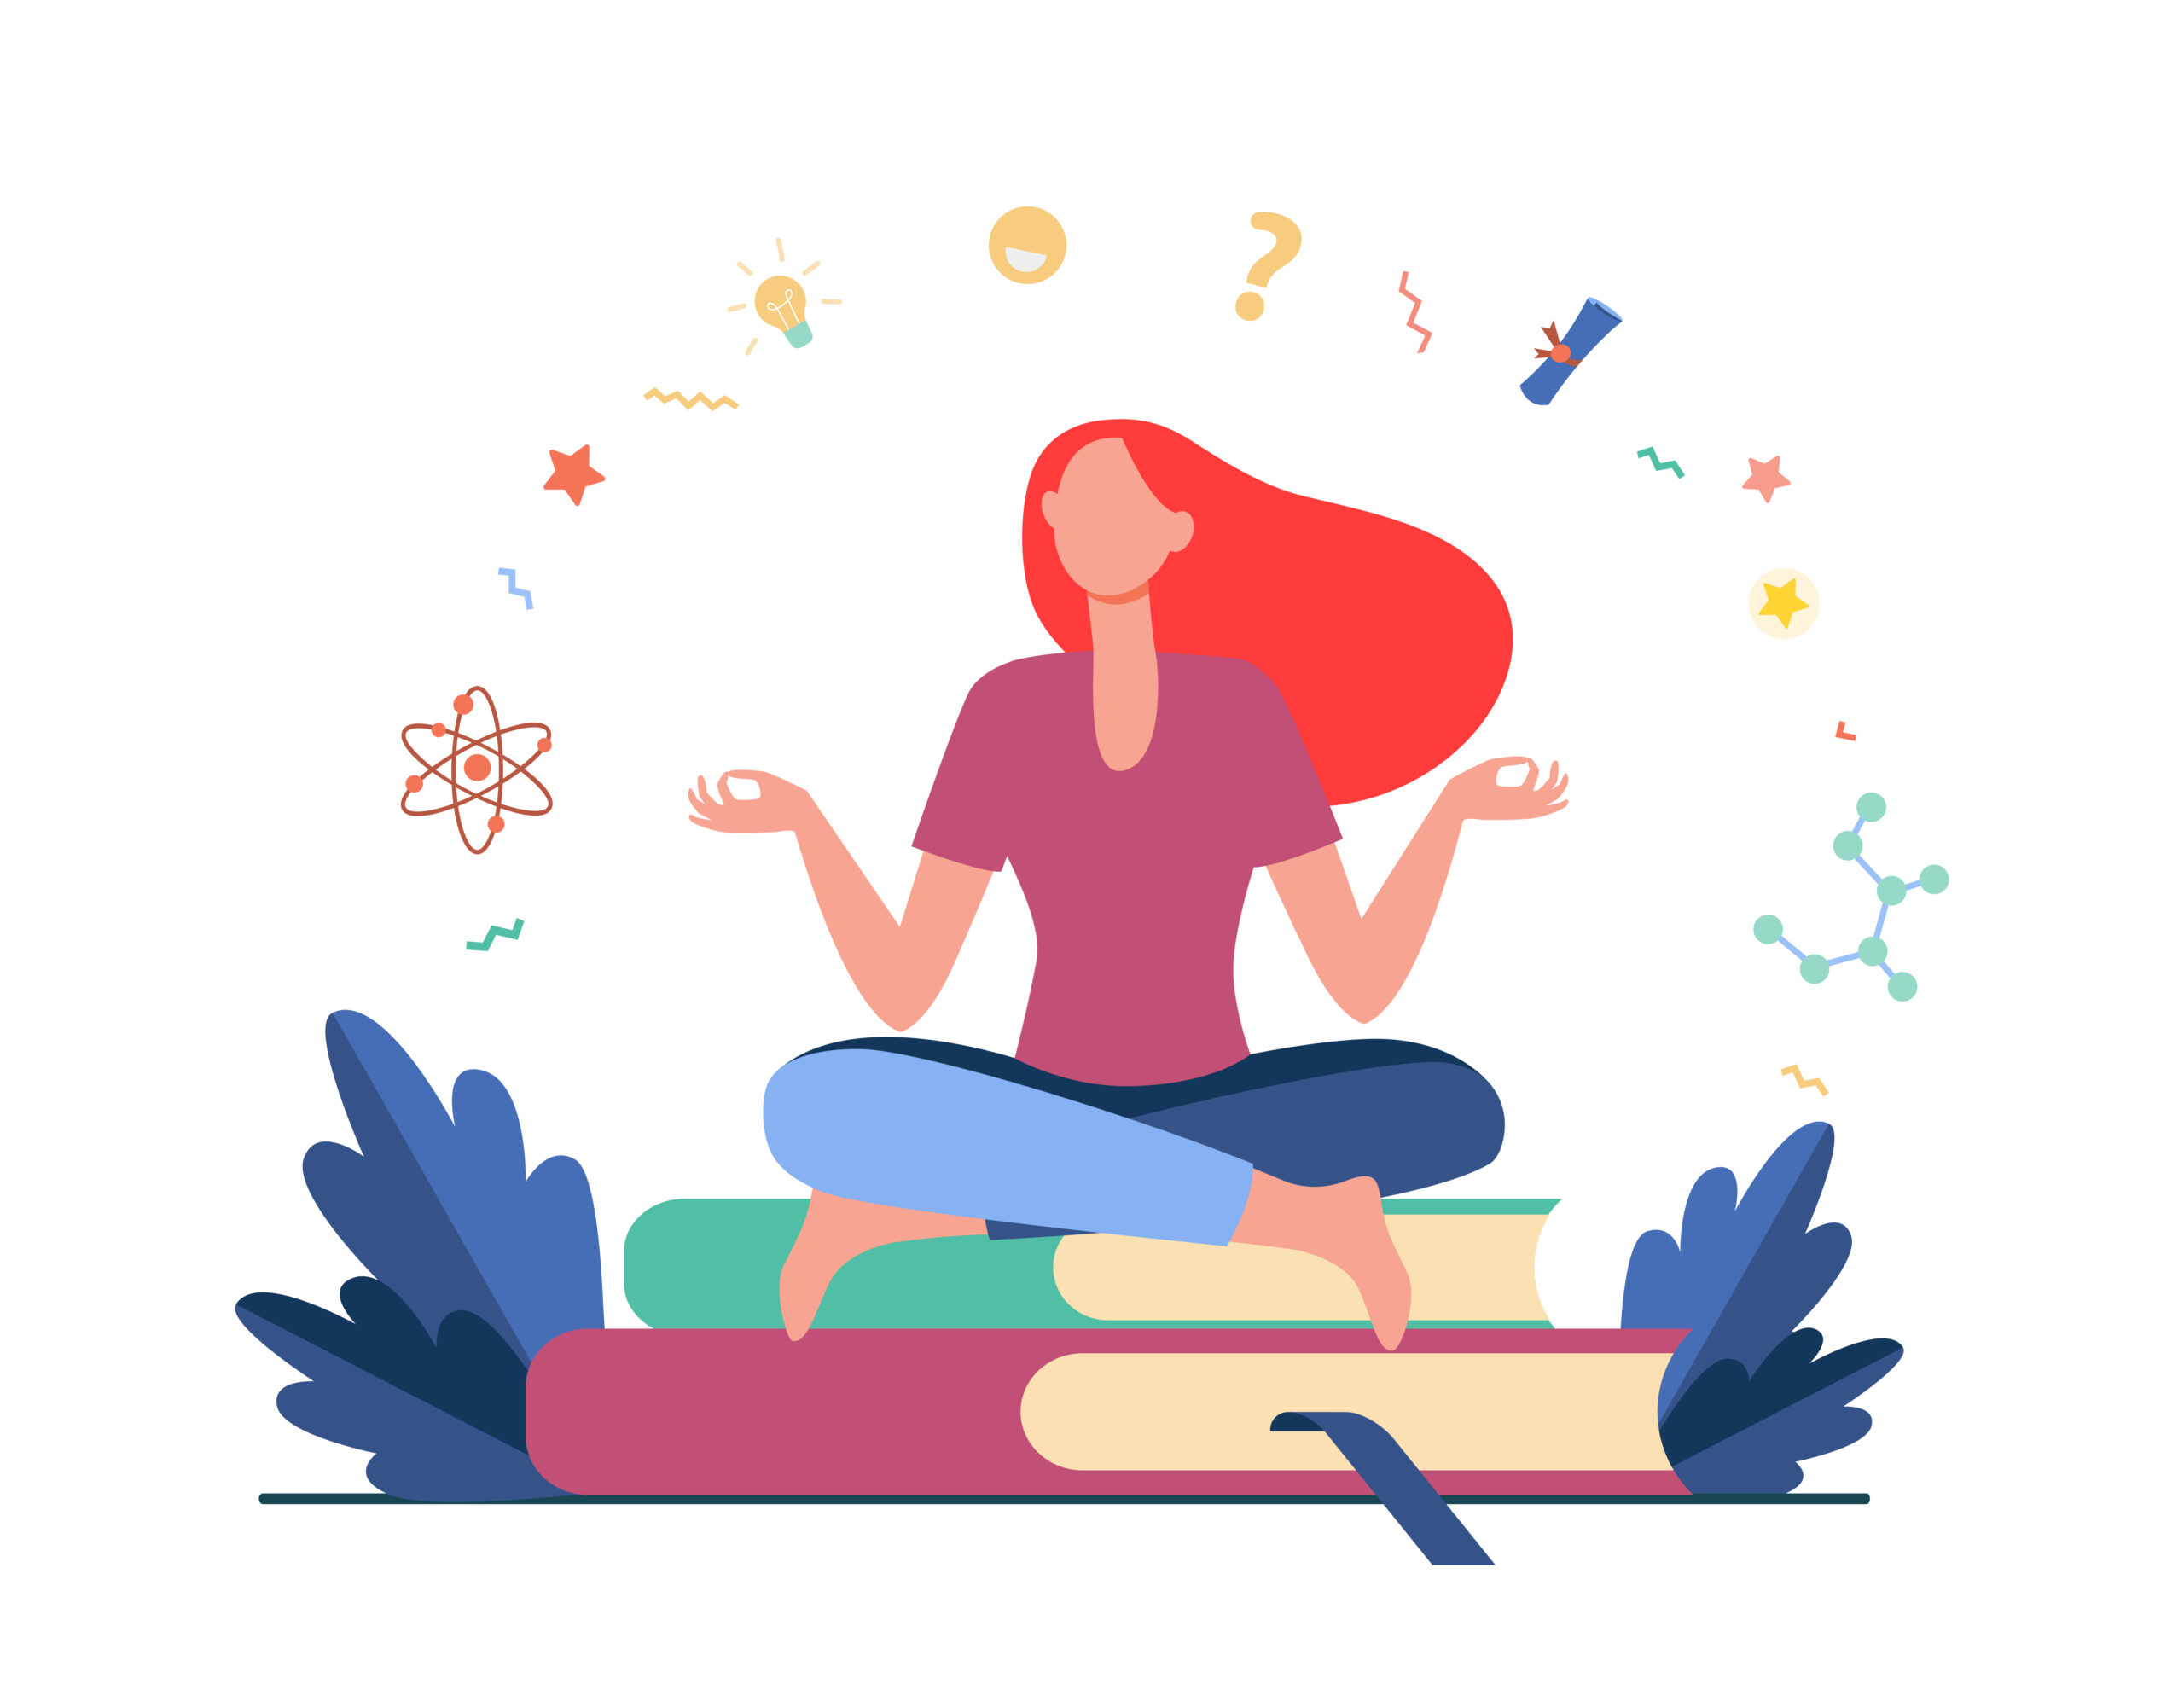 Woman sitting and meditating on pile of books. Student, study, learning flat vector illustration. Education and knowledge concept for banner, website design or landing web page